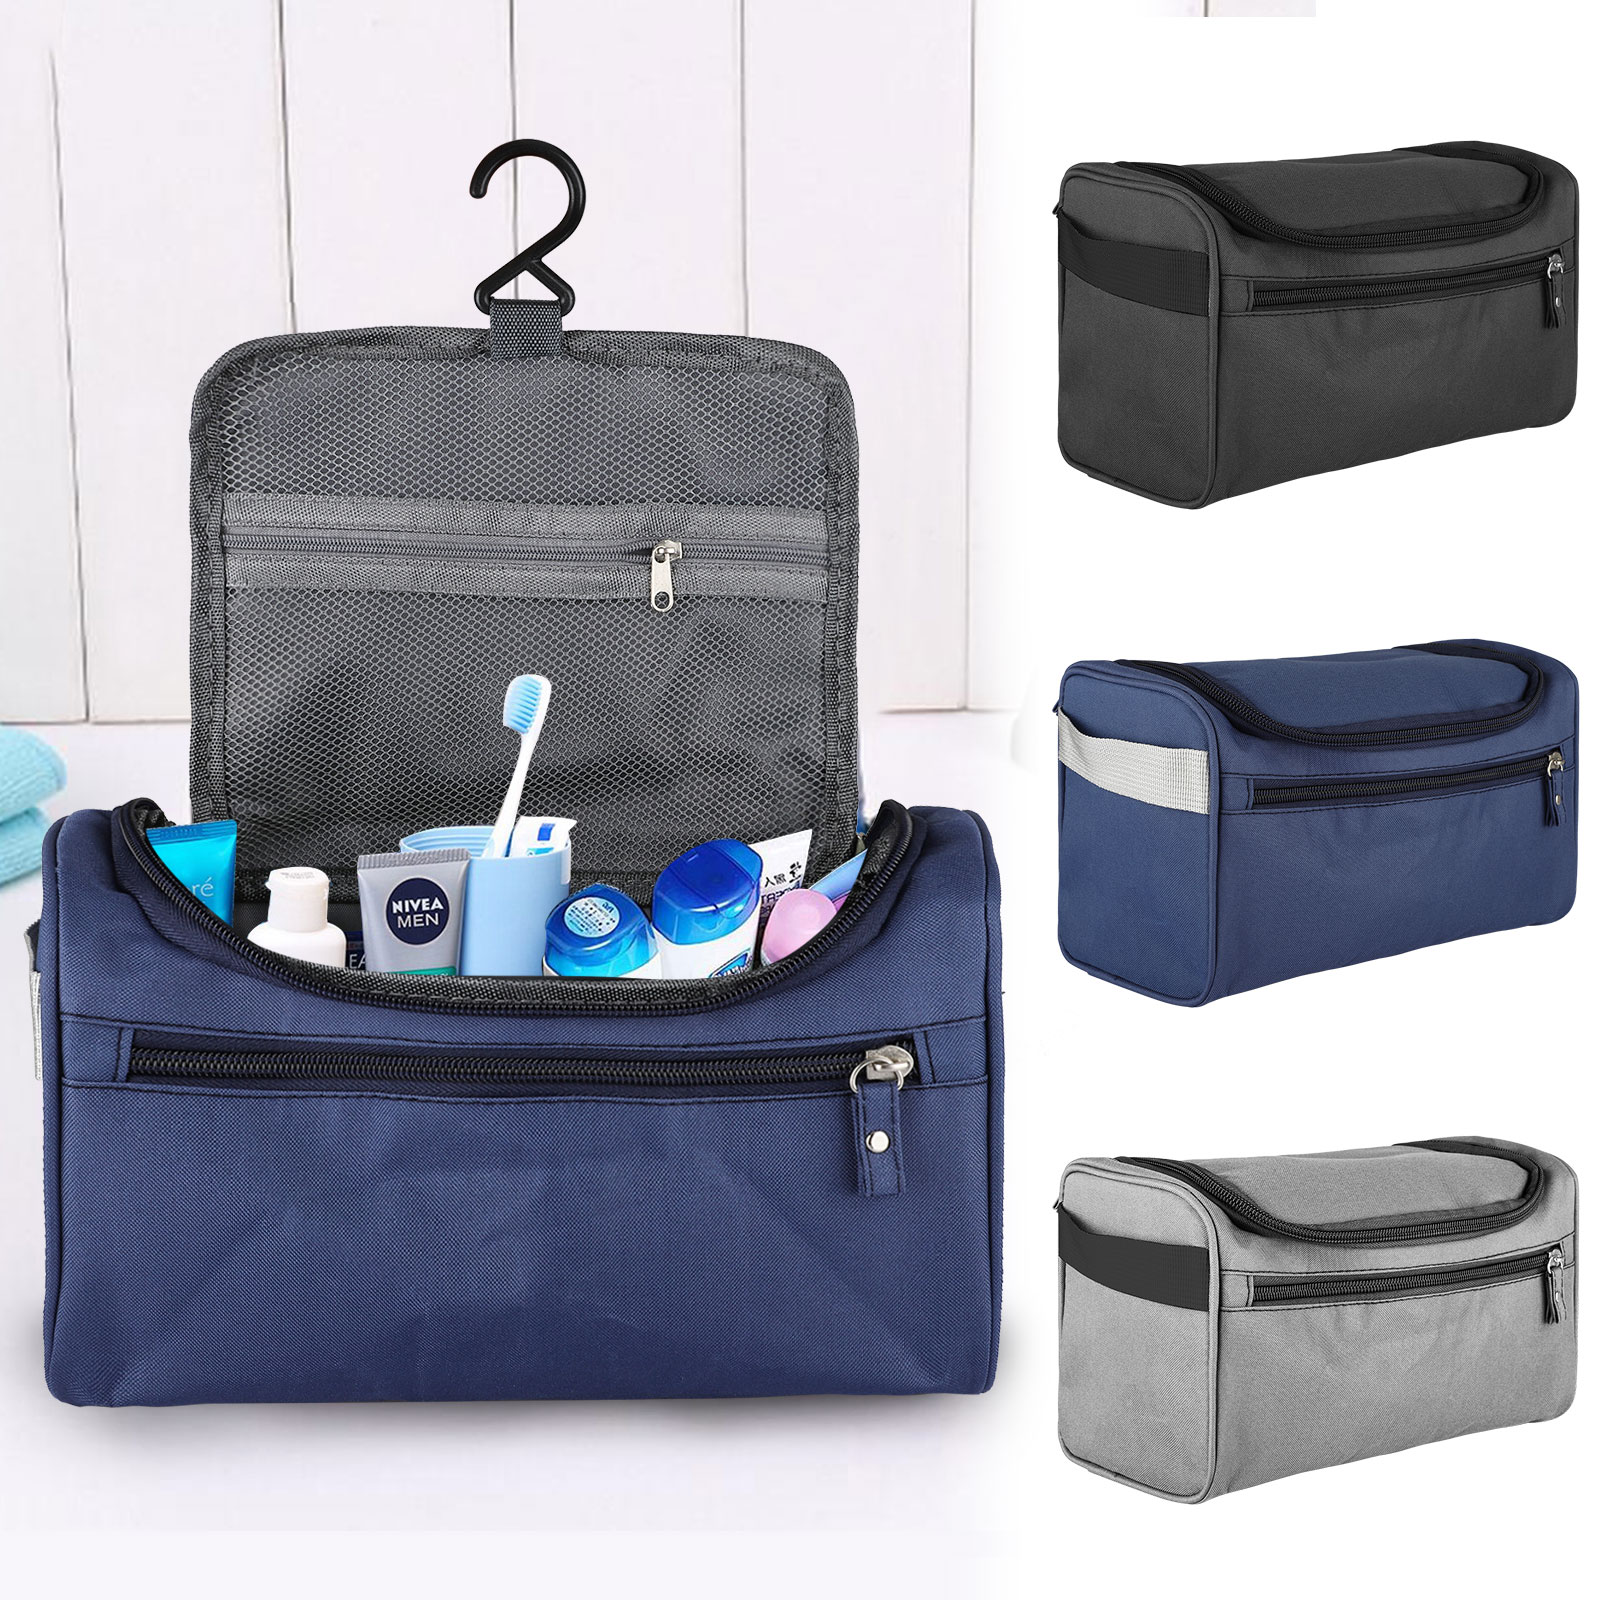 Travel-Wash-Bag-Toiletry-Organizer-Shaving-Cosmetic-Make-up-Case-Waterproof-Mens